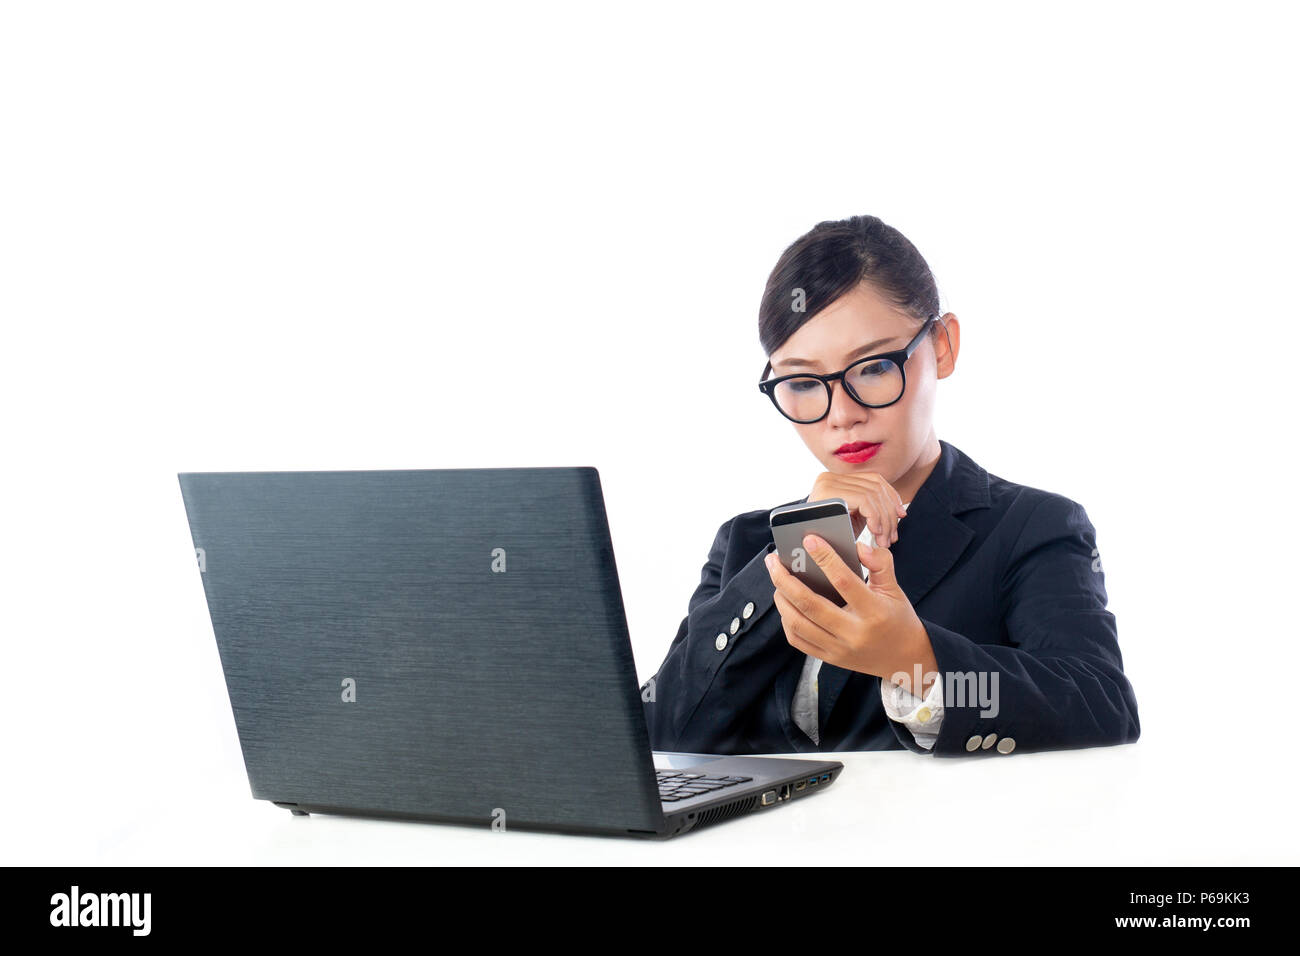 Business woman looking at the phone, analyzing the white background. Stock Photo